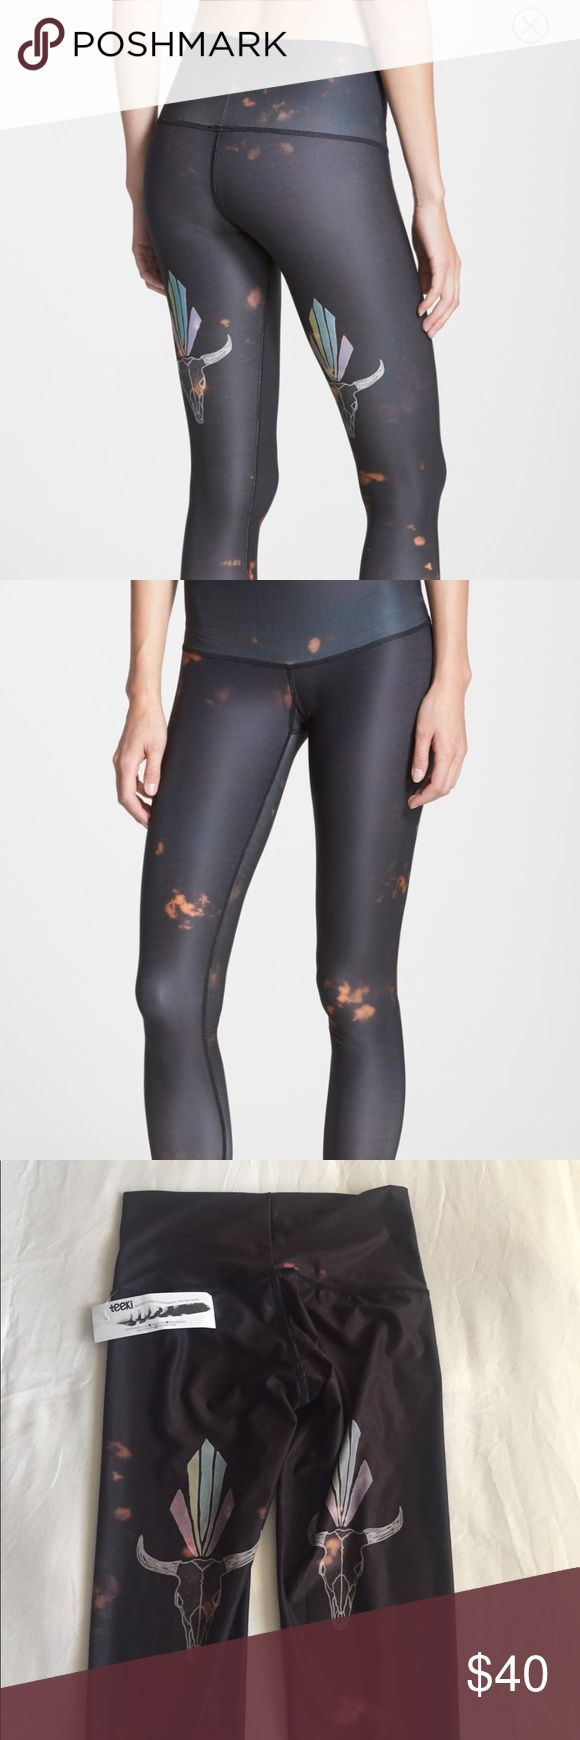 """Teeki buffalo princess hot pant legging size XS Moody tie dye patterns eco-conscious yoga leggings made in part from recycled plastic bottles. An ultra-wide, elastic-free waistband and chafe-resistant flatlock seams offer a smooth, comfortable fit. 26"""" inseam  Four-way-stretch fabric offers maximum stretch for a wide range of motion. Moisture-wicking fabric dries quickly to keep you cool and comfortable. Antibacterial treatment to fight odor. 79% PET (polyethylene terephthalate) from…"""